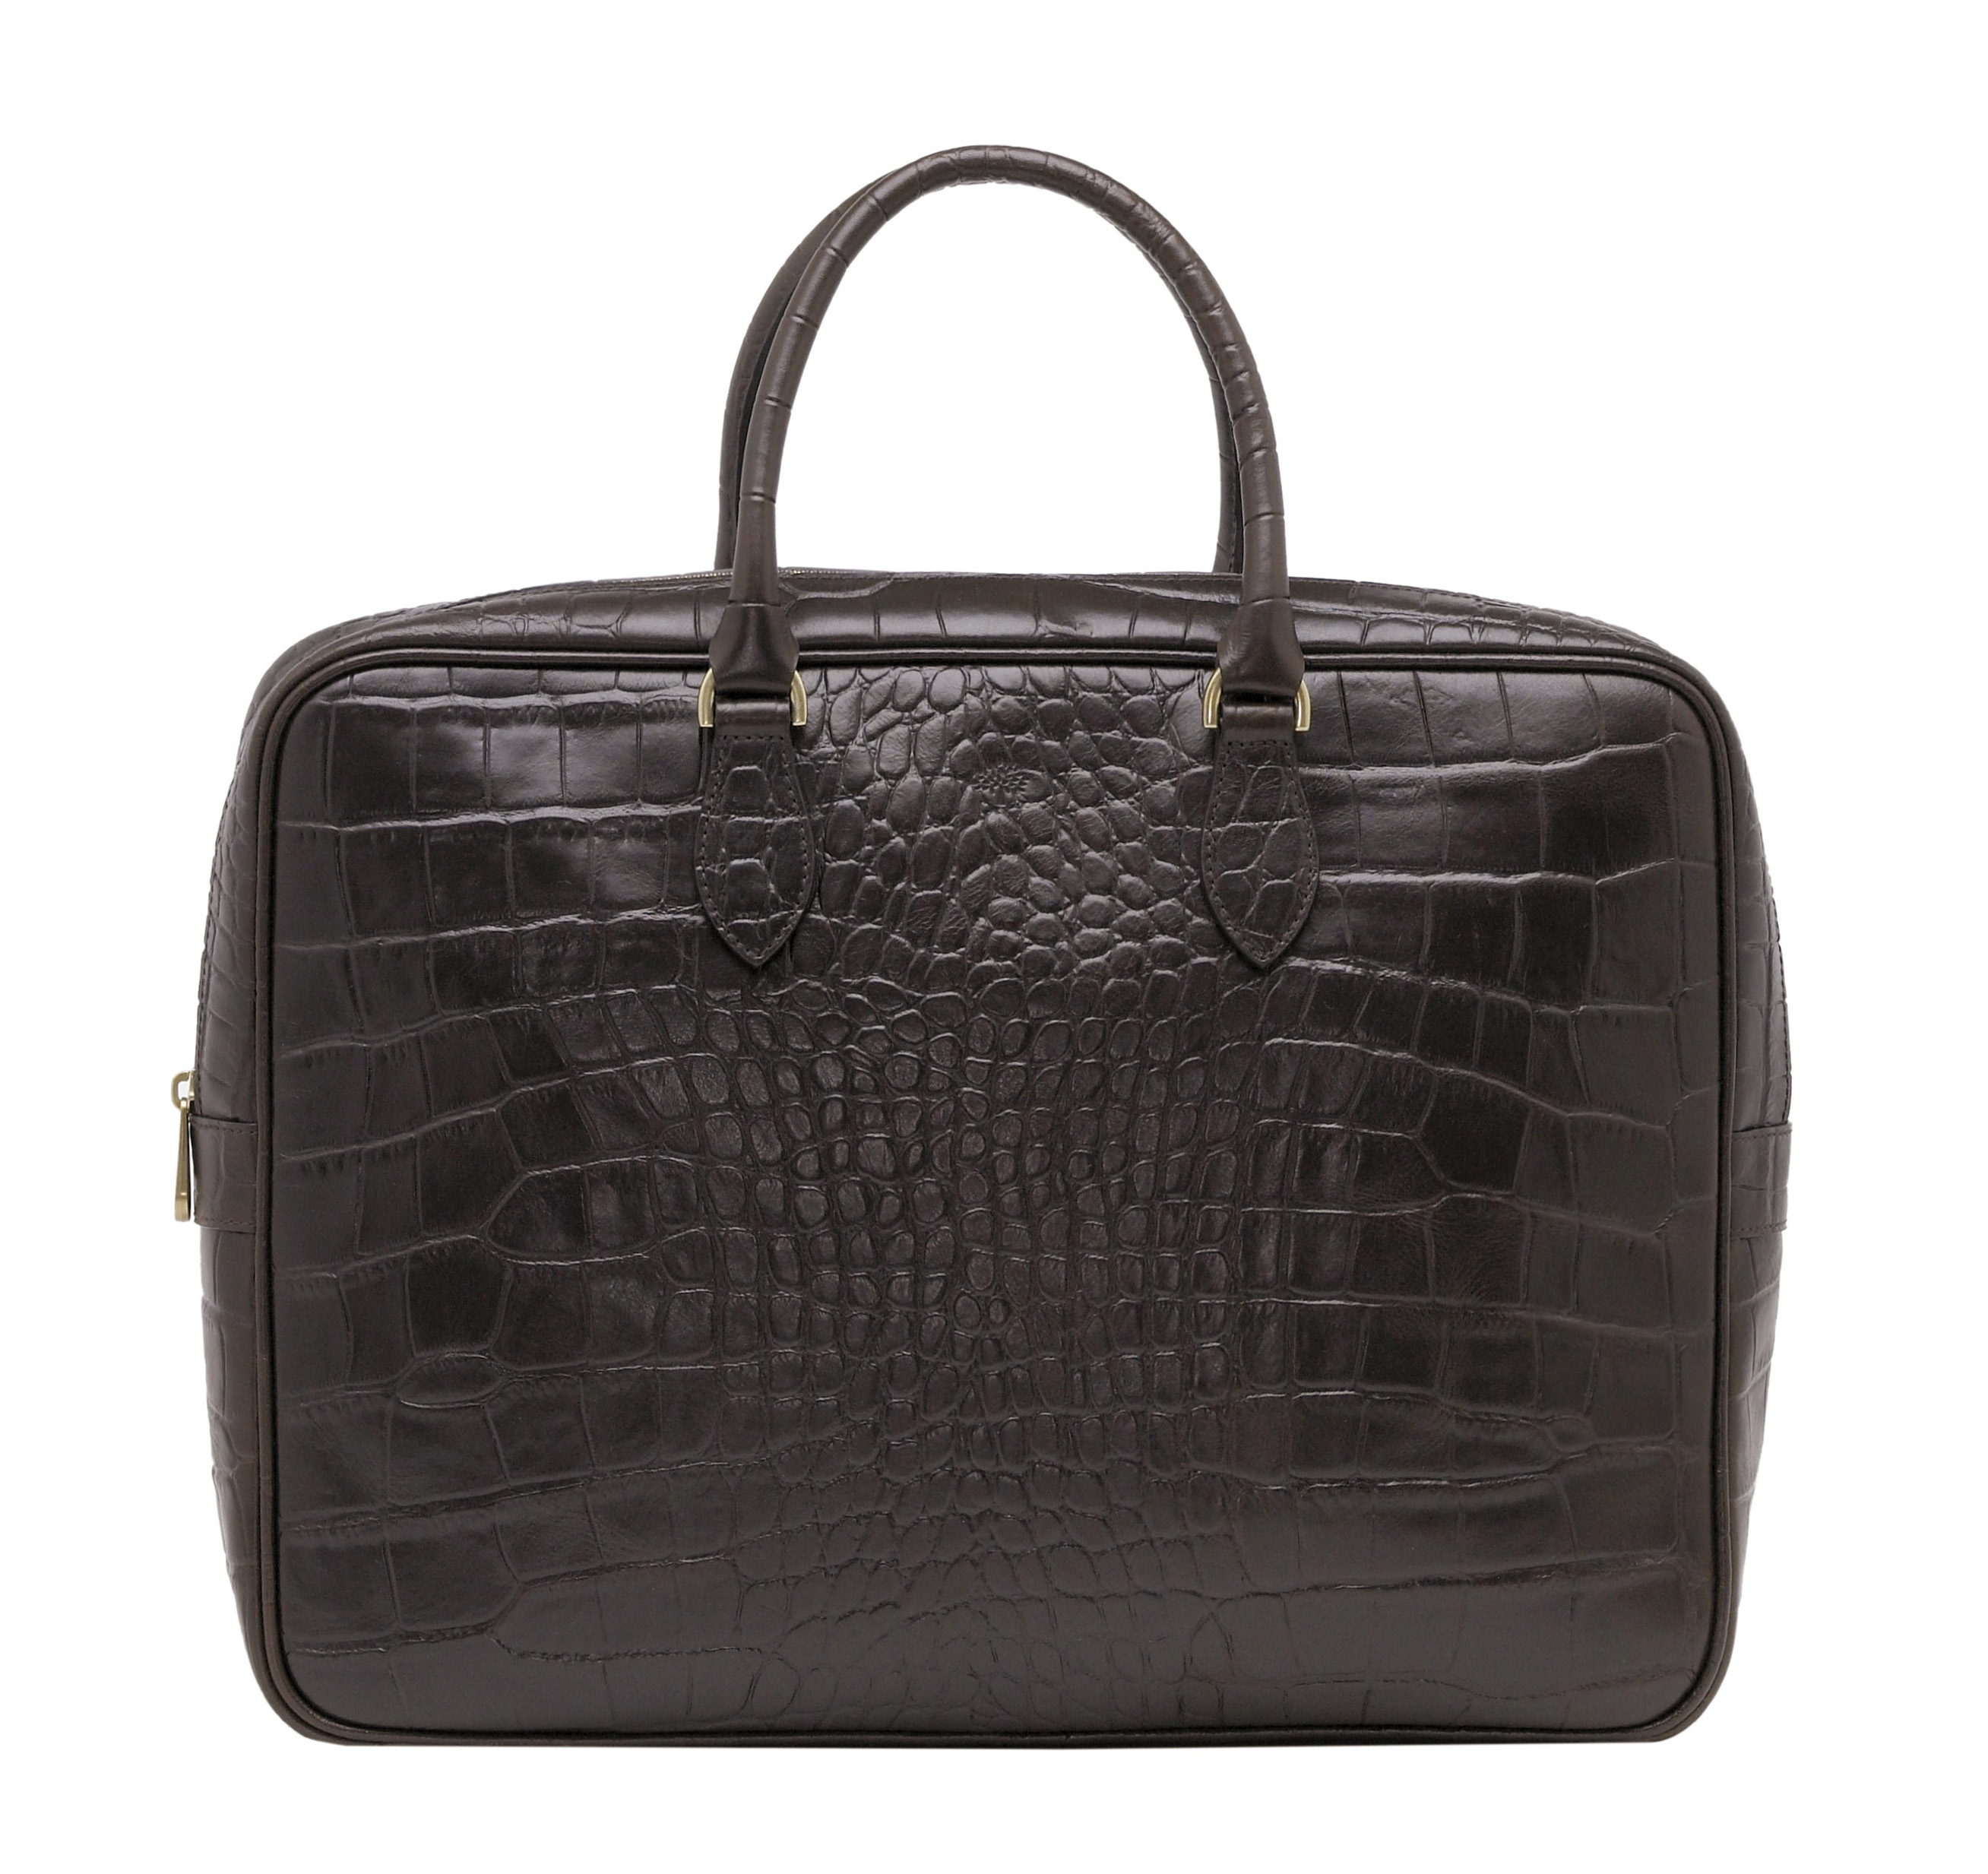 b97245e90864 Affordable Designer Bag  Mulberry Tony Bag